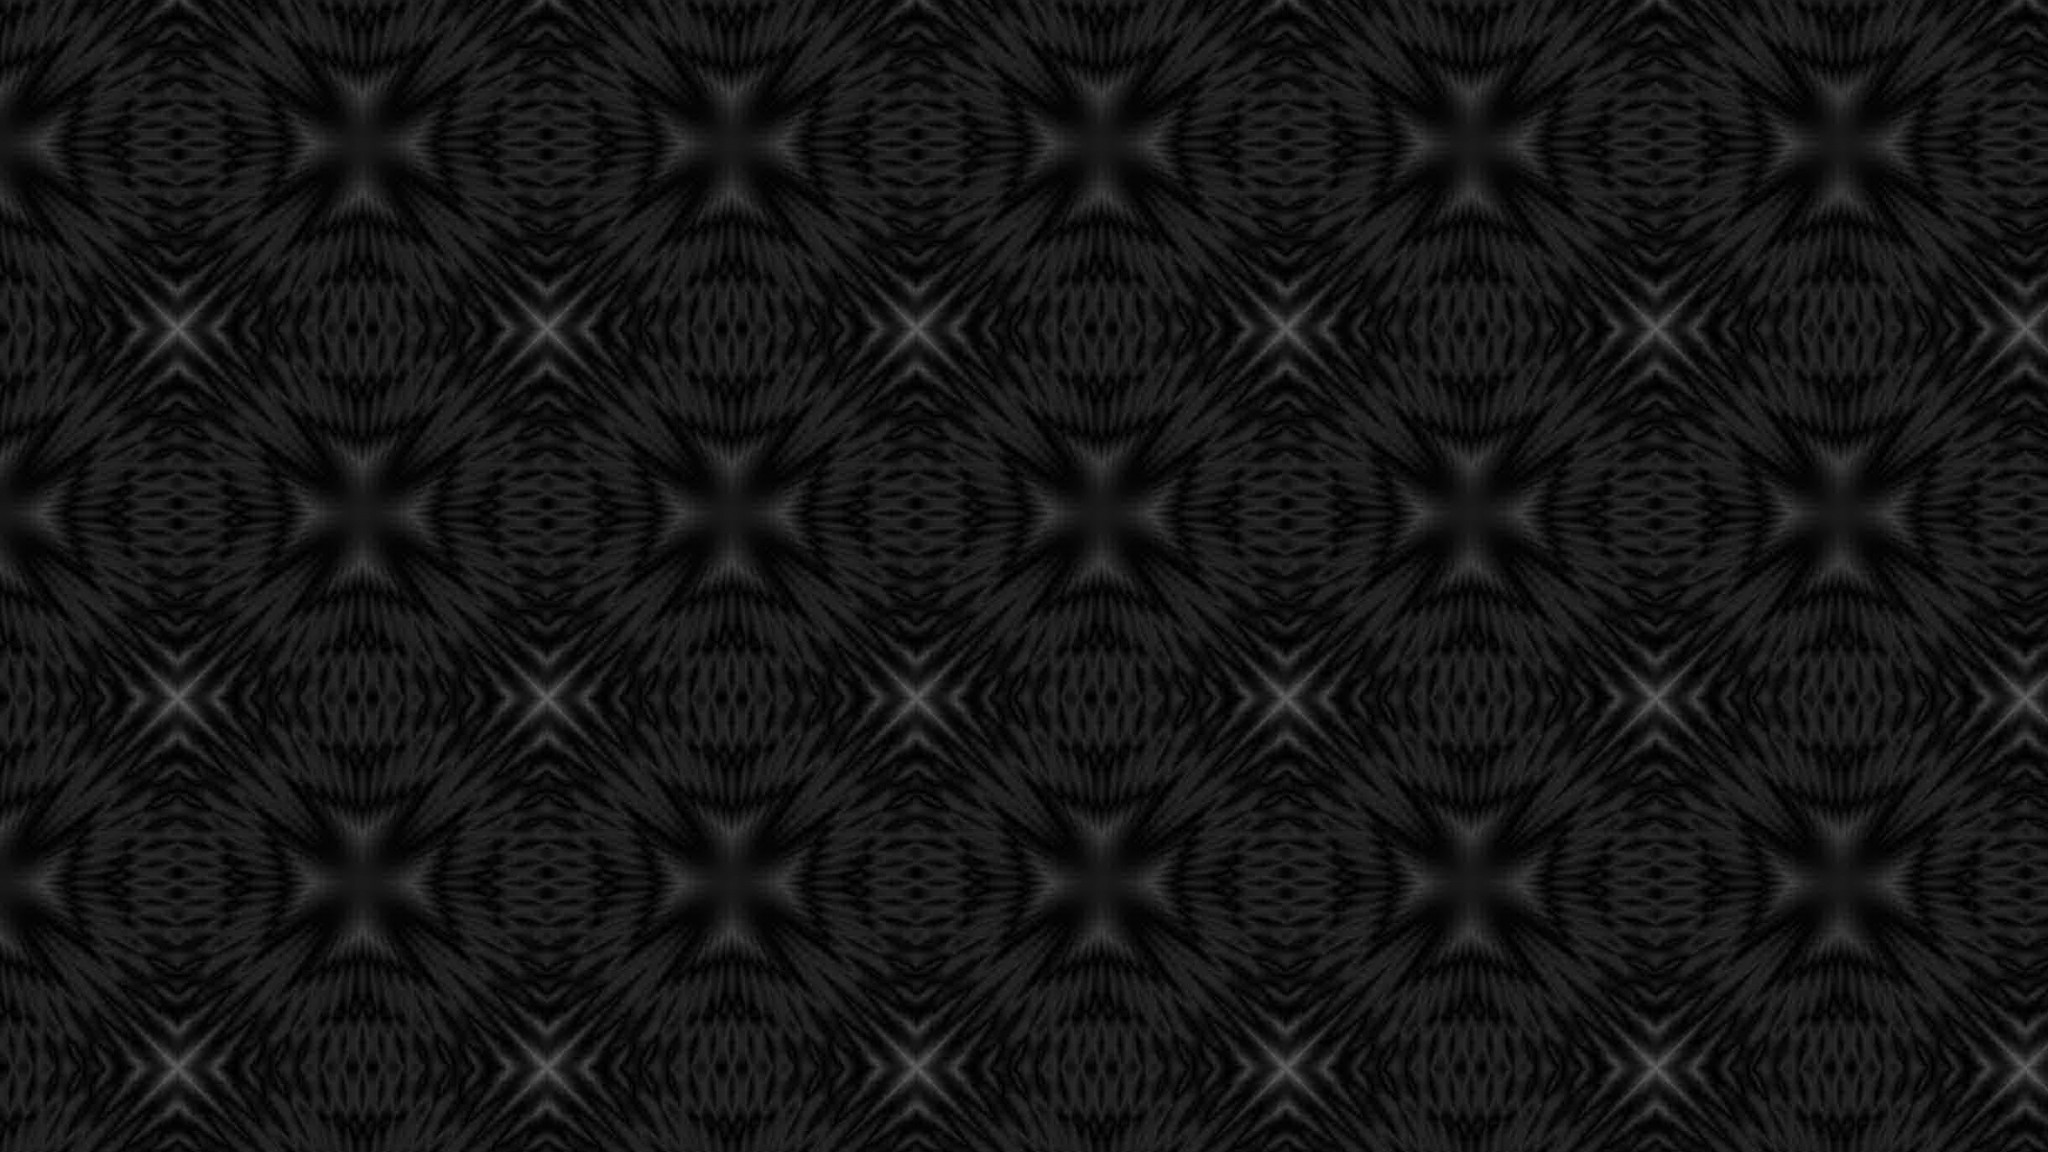 Preview wallpaper black and white, abstract, black background 2048×1152